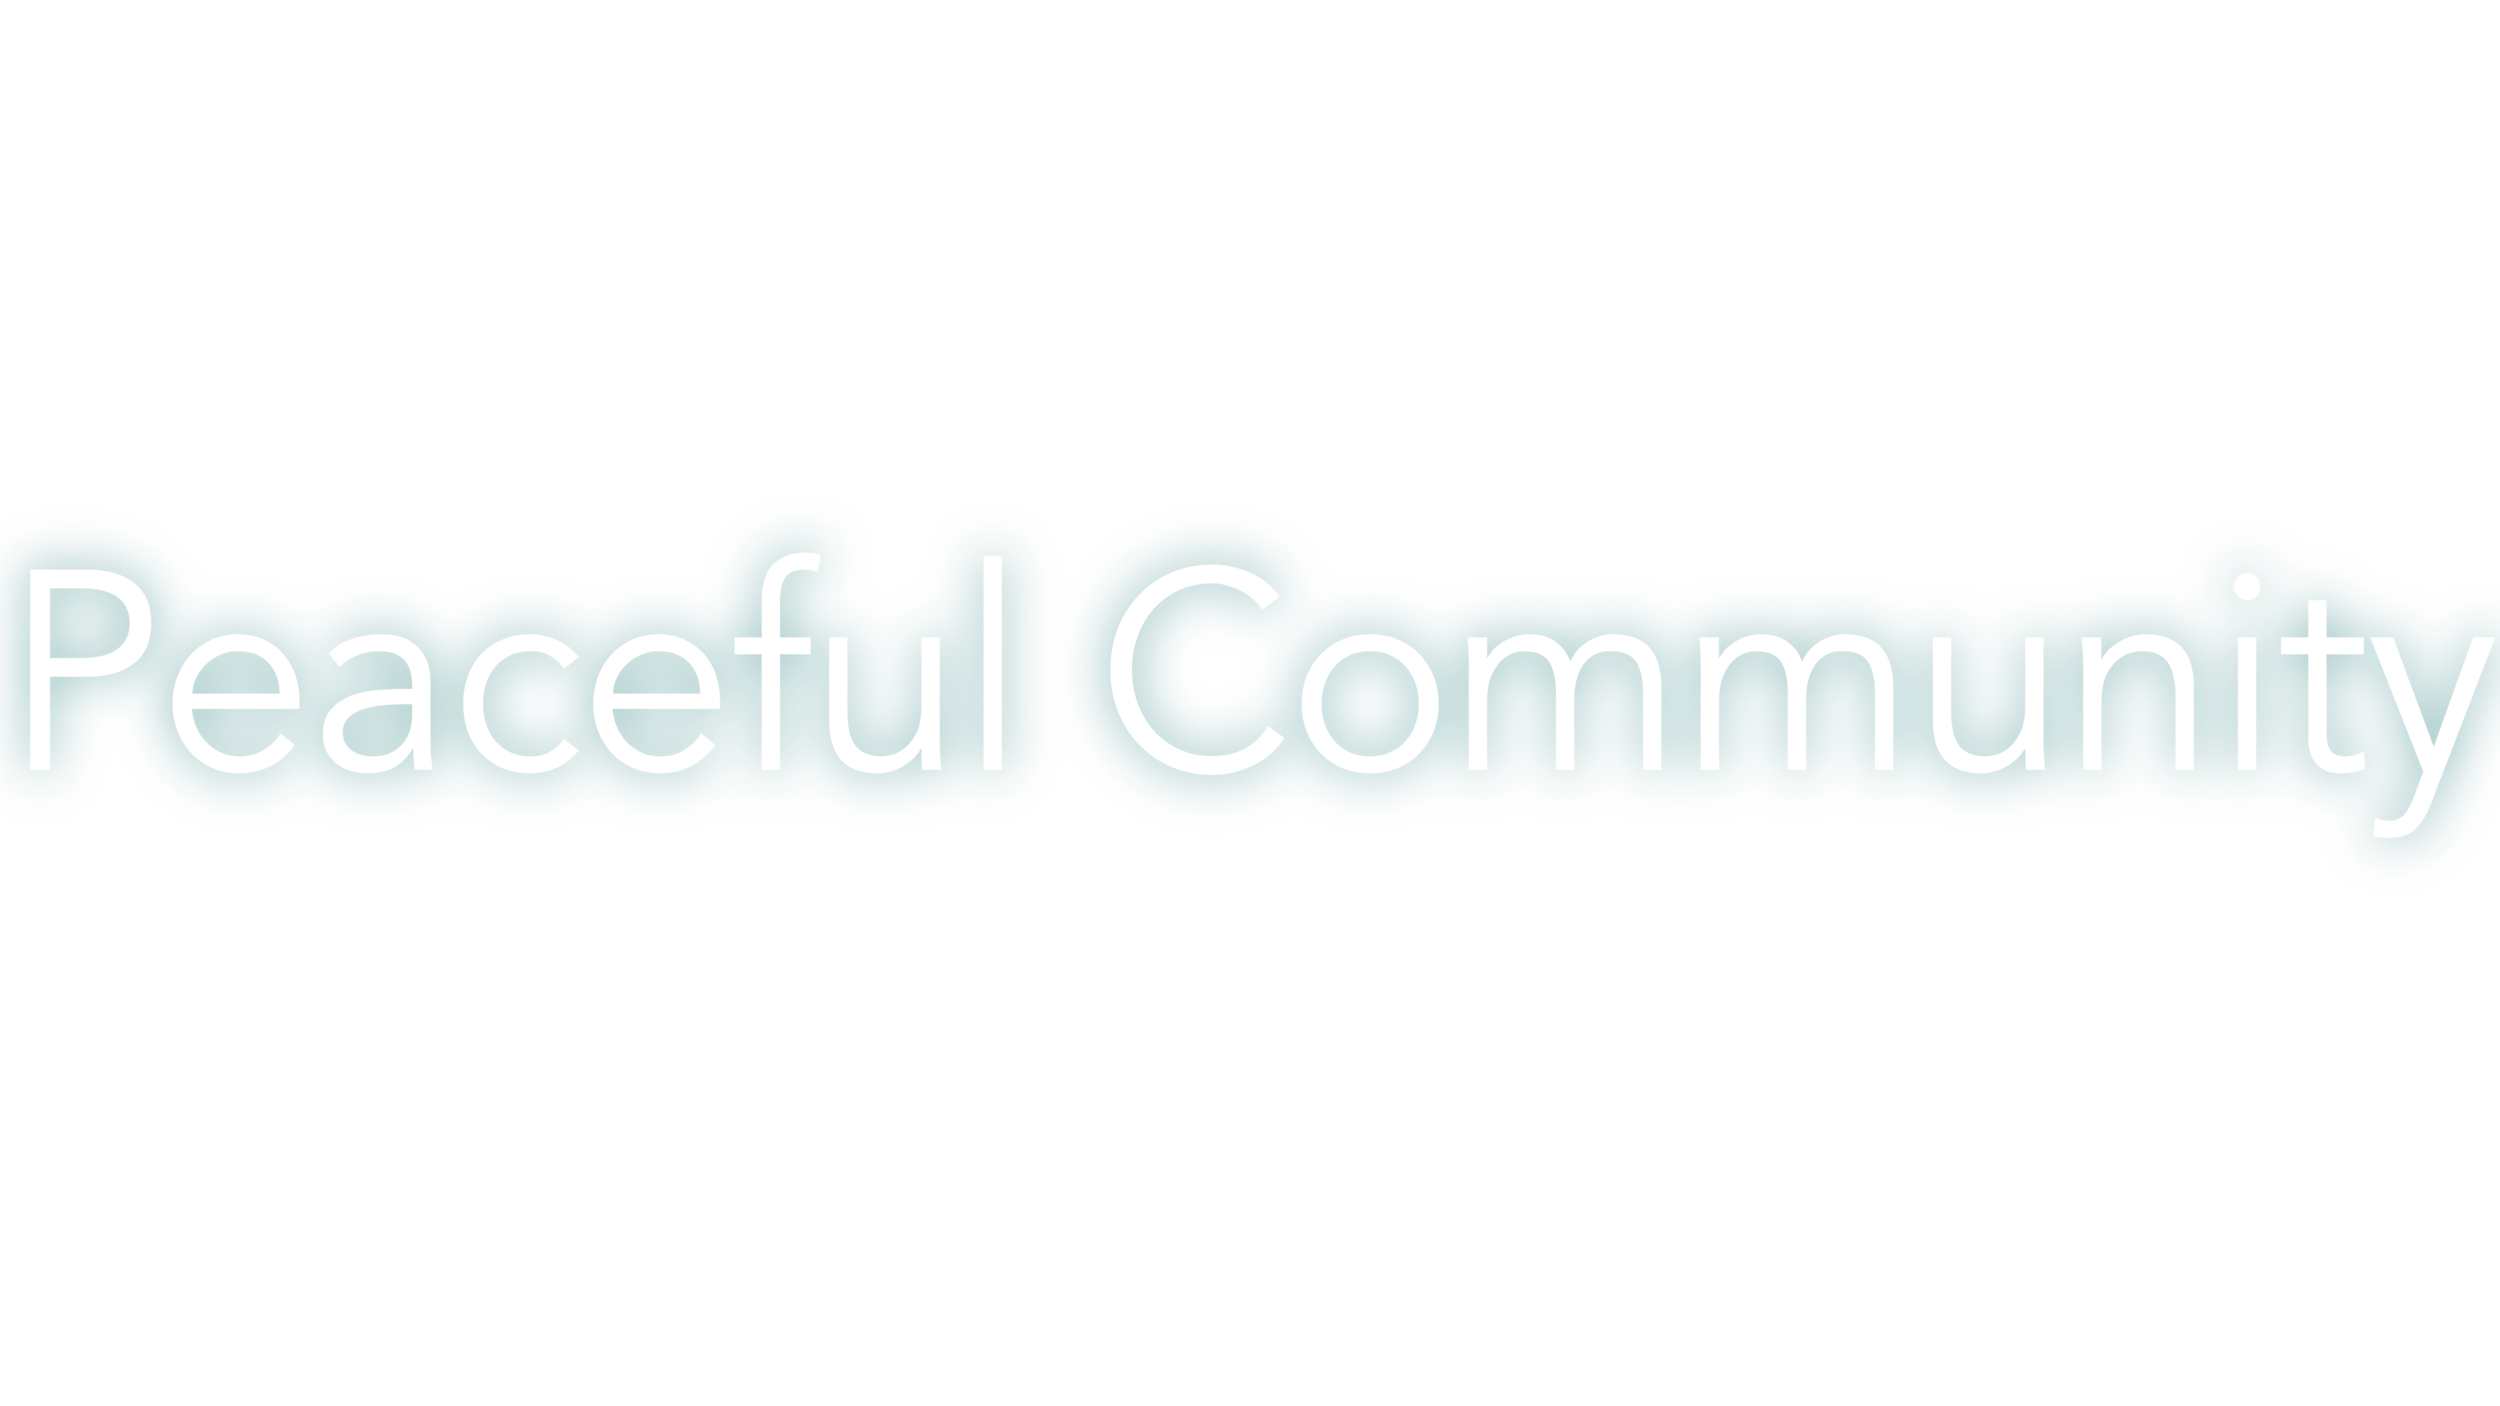 PeacefulCommunity-01.png